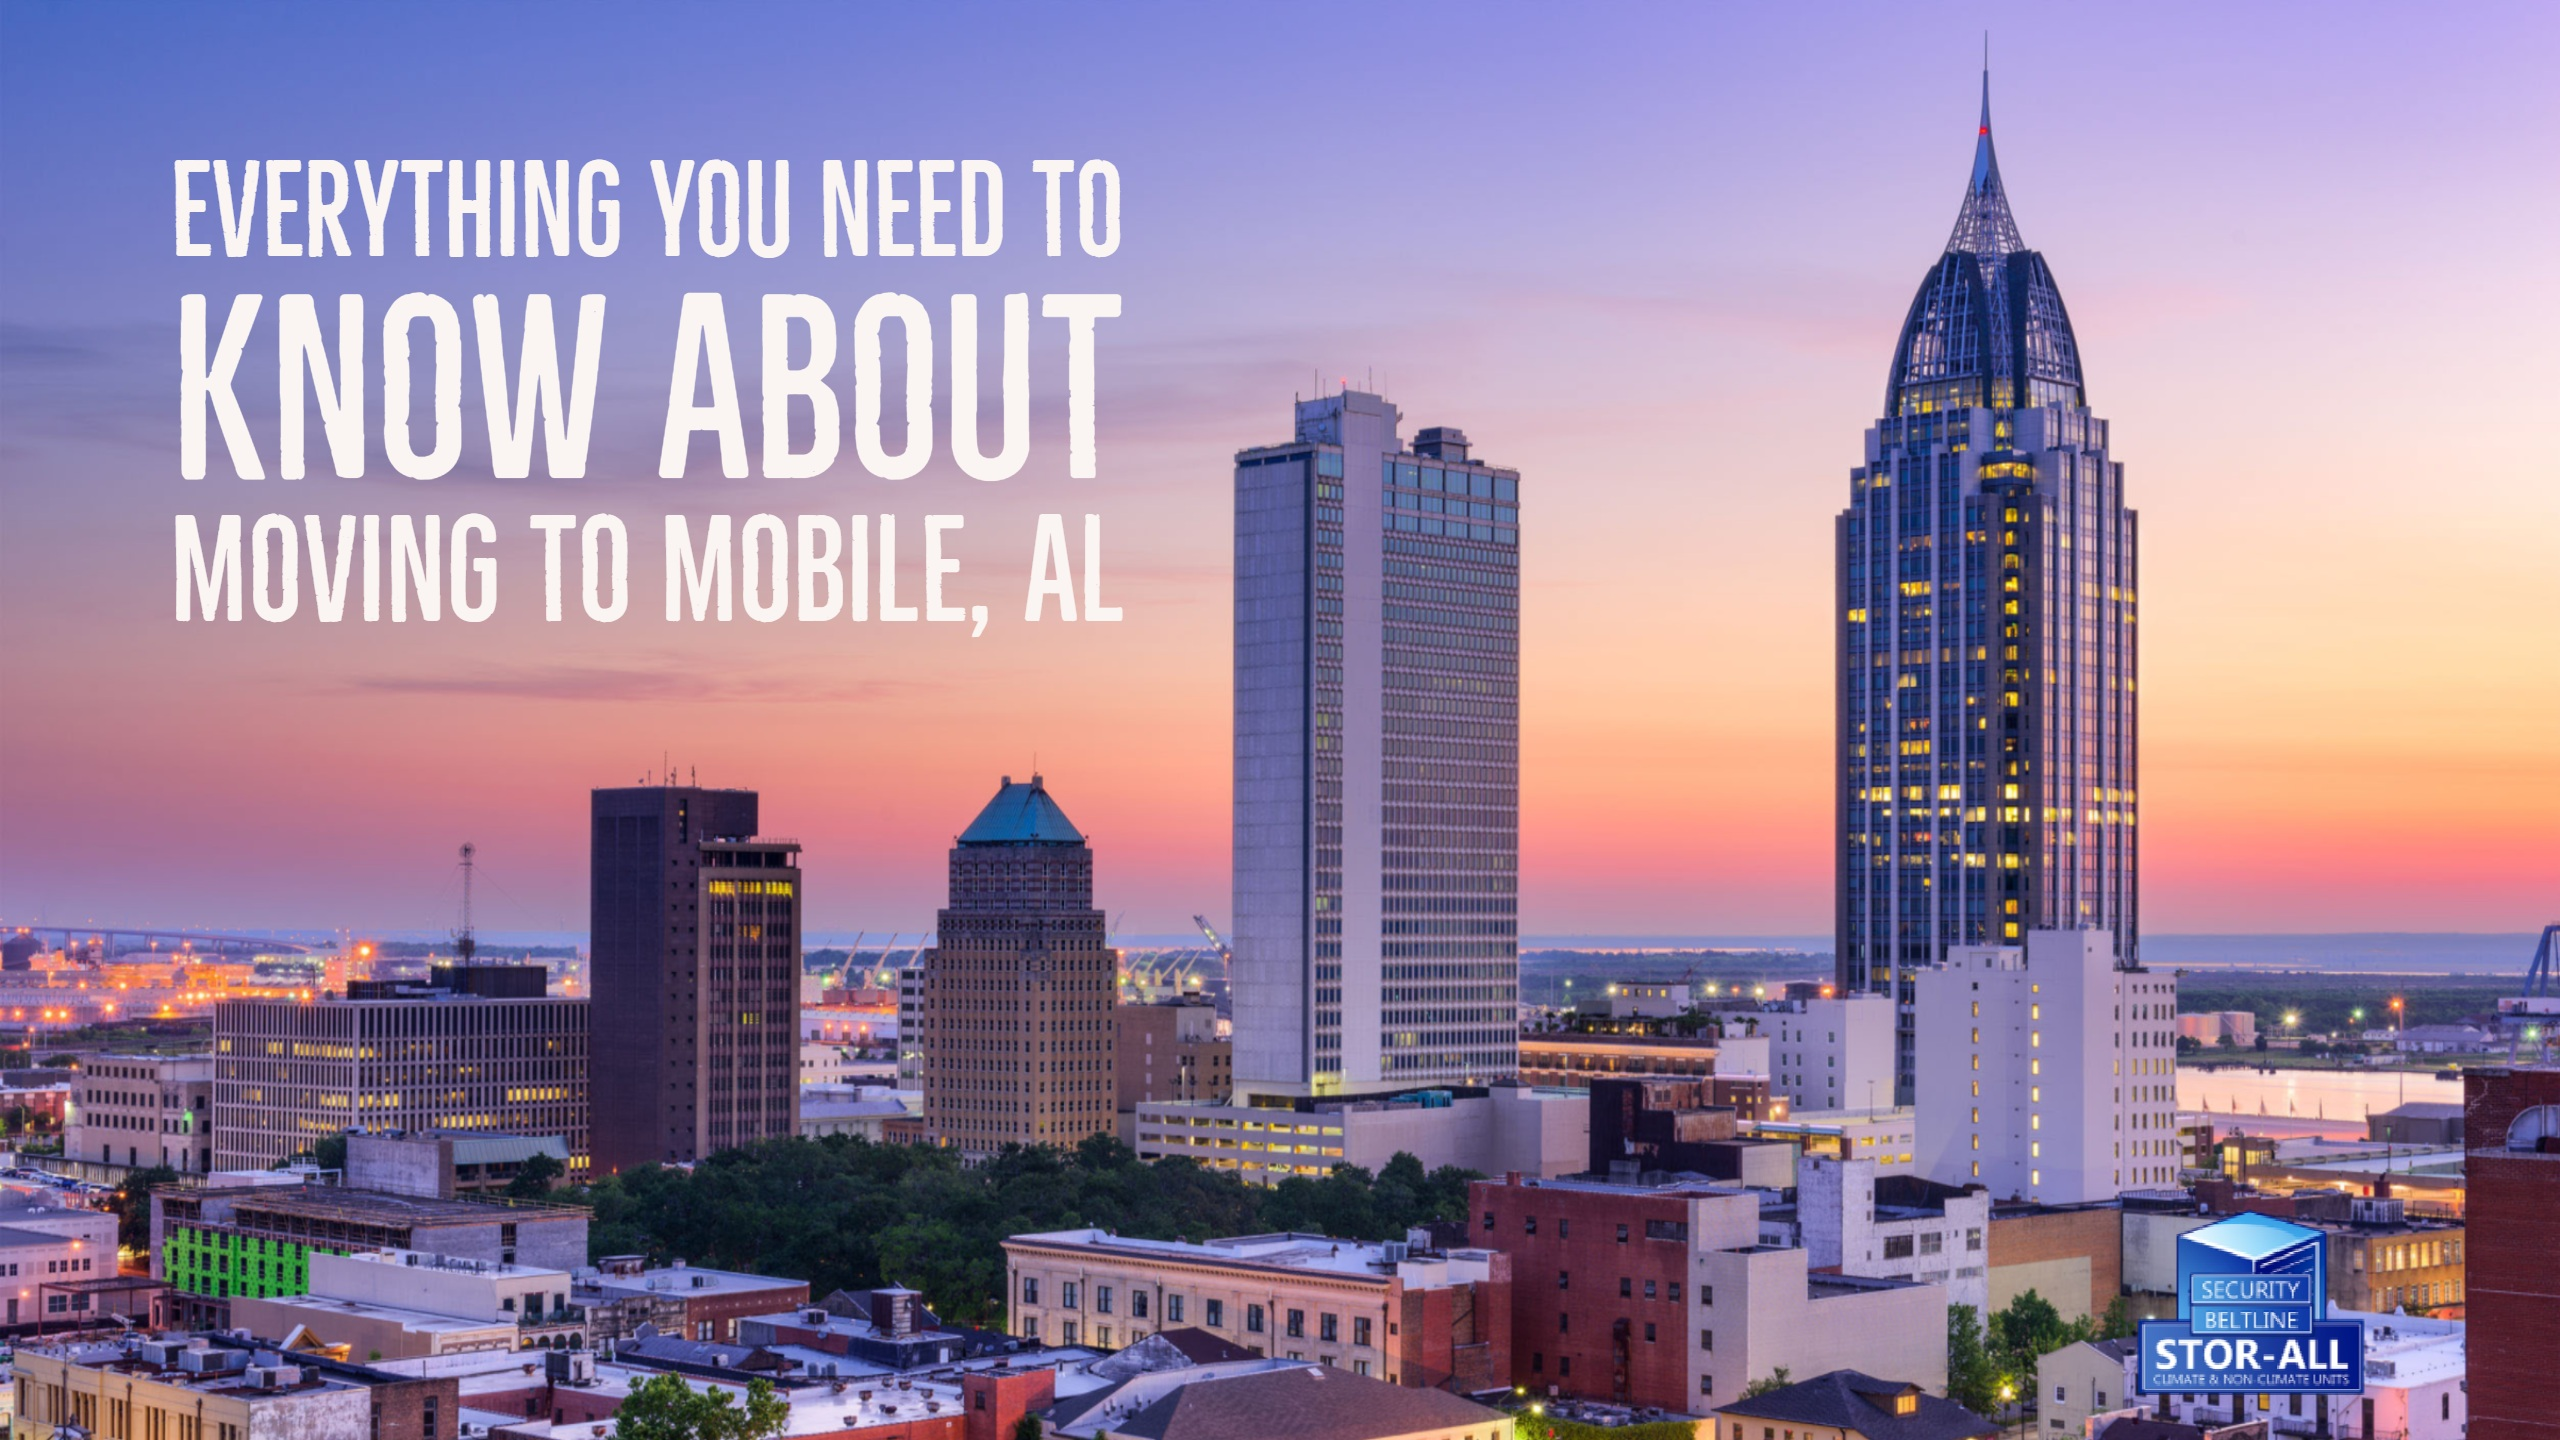 Everything You Need to Know About Moving to Mobile, AL